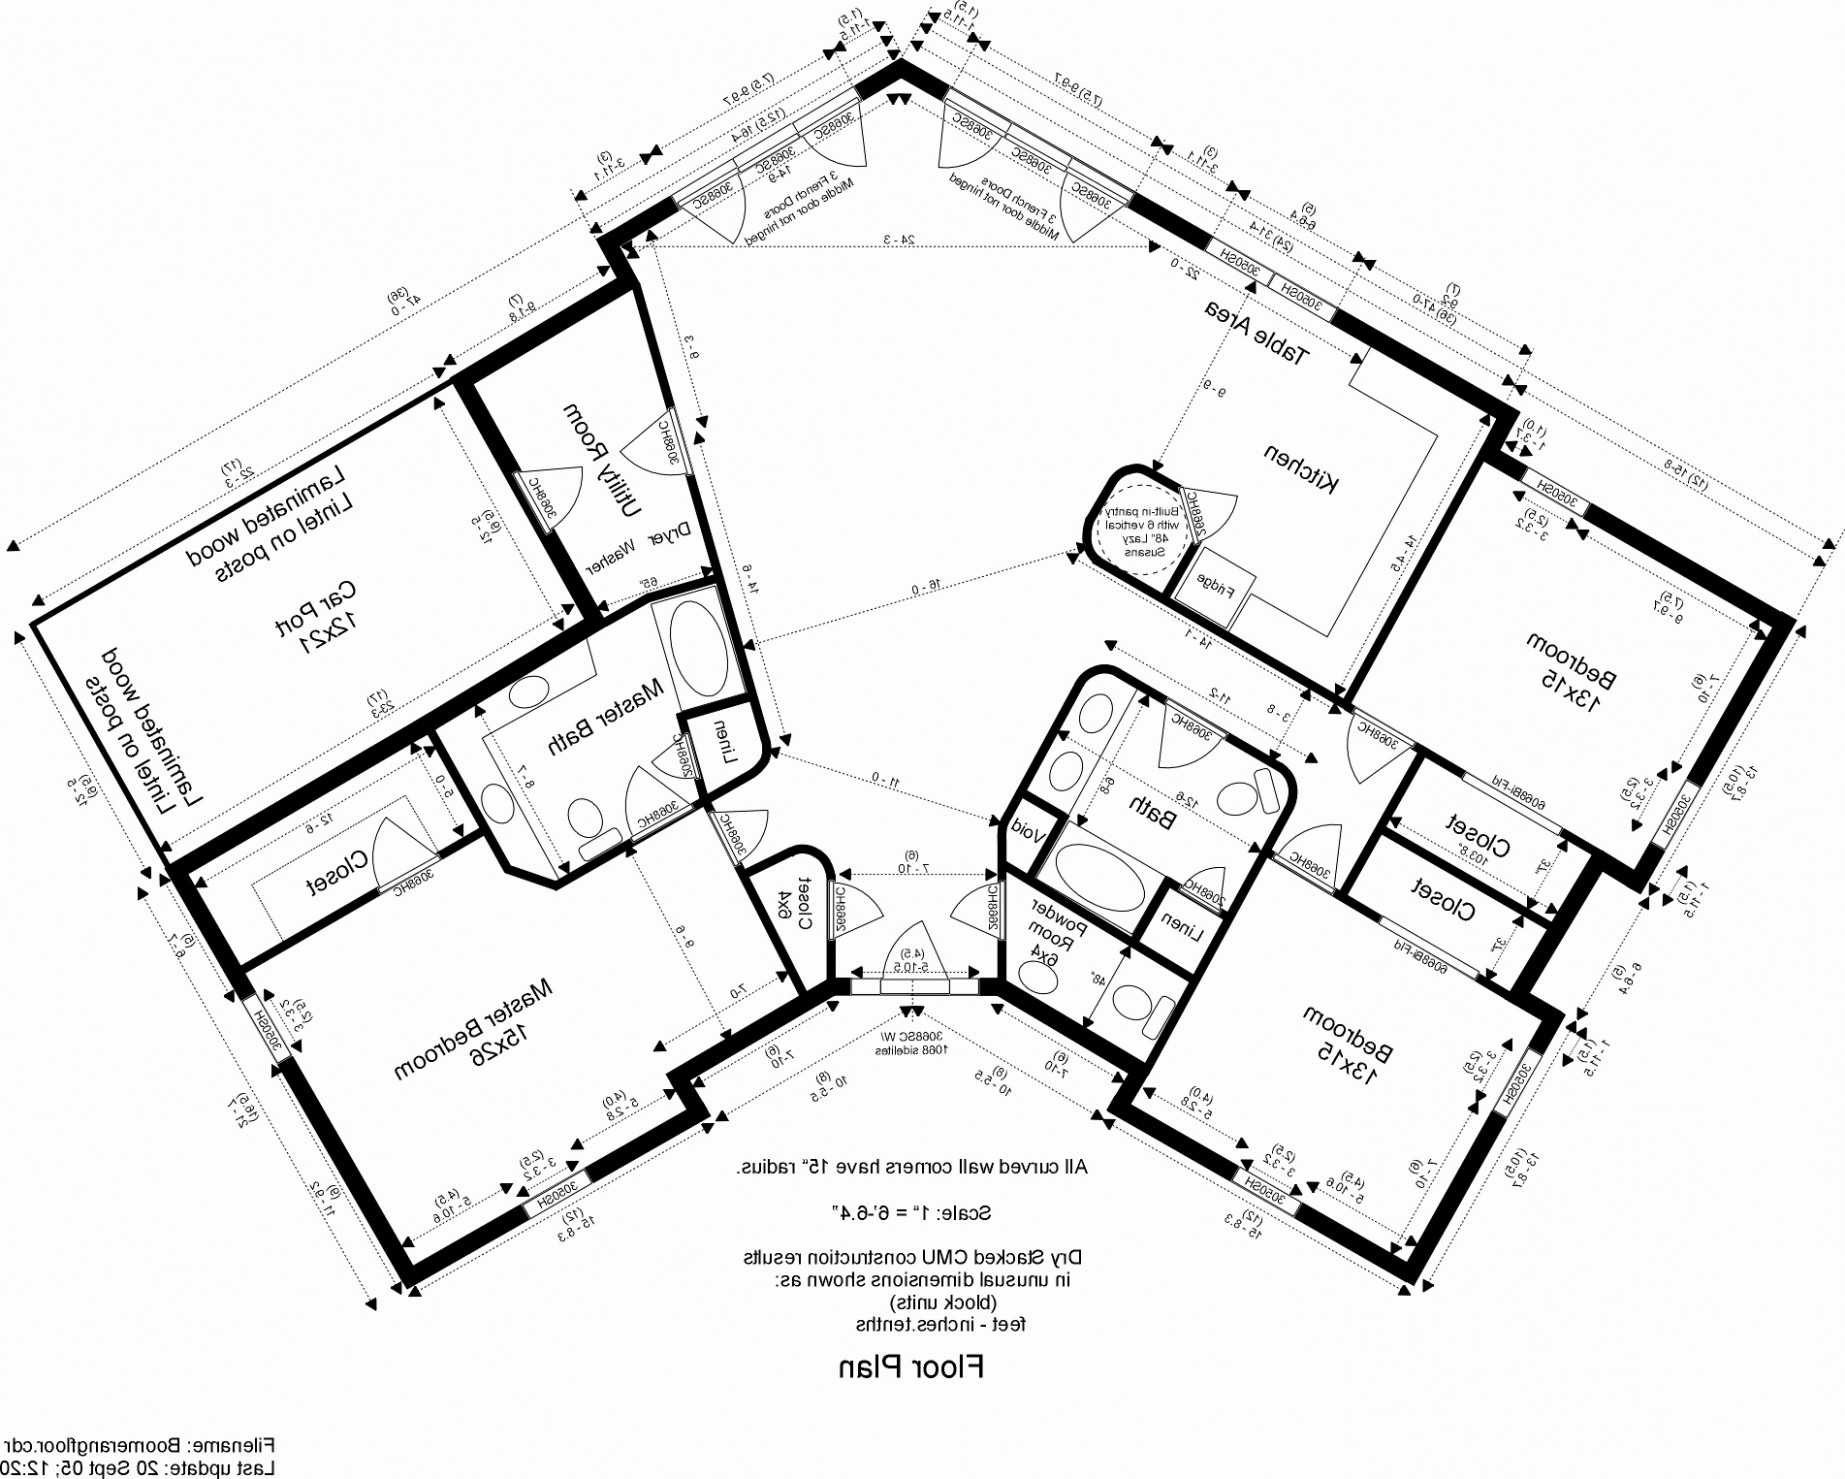 Building a house drawing at free for for Construction drawing apps